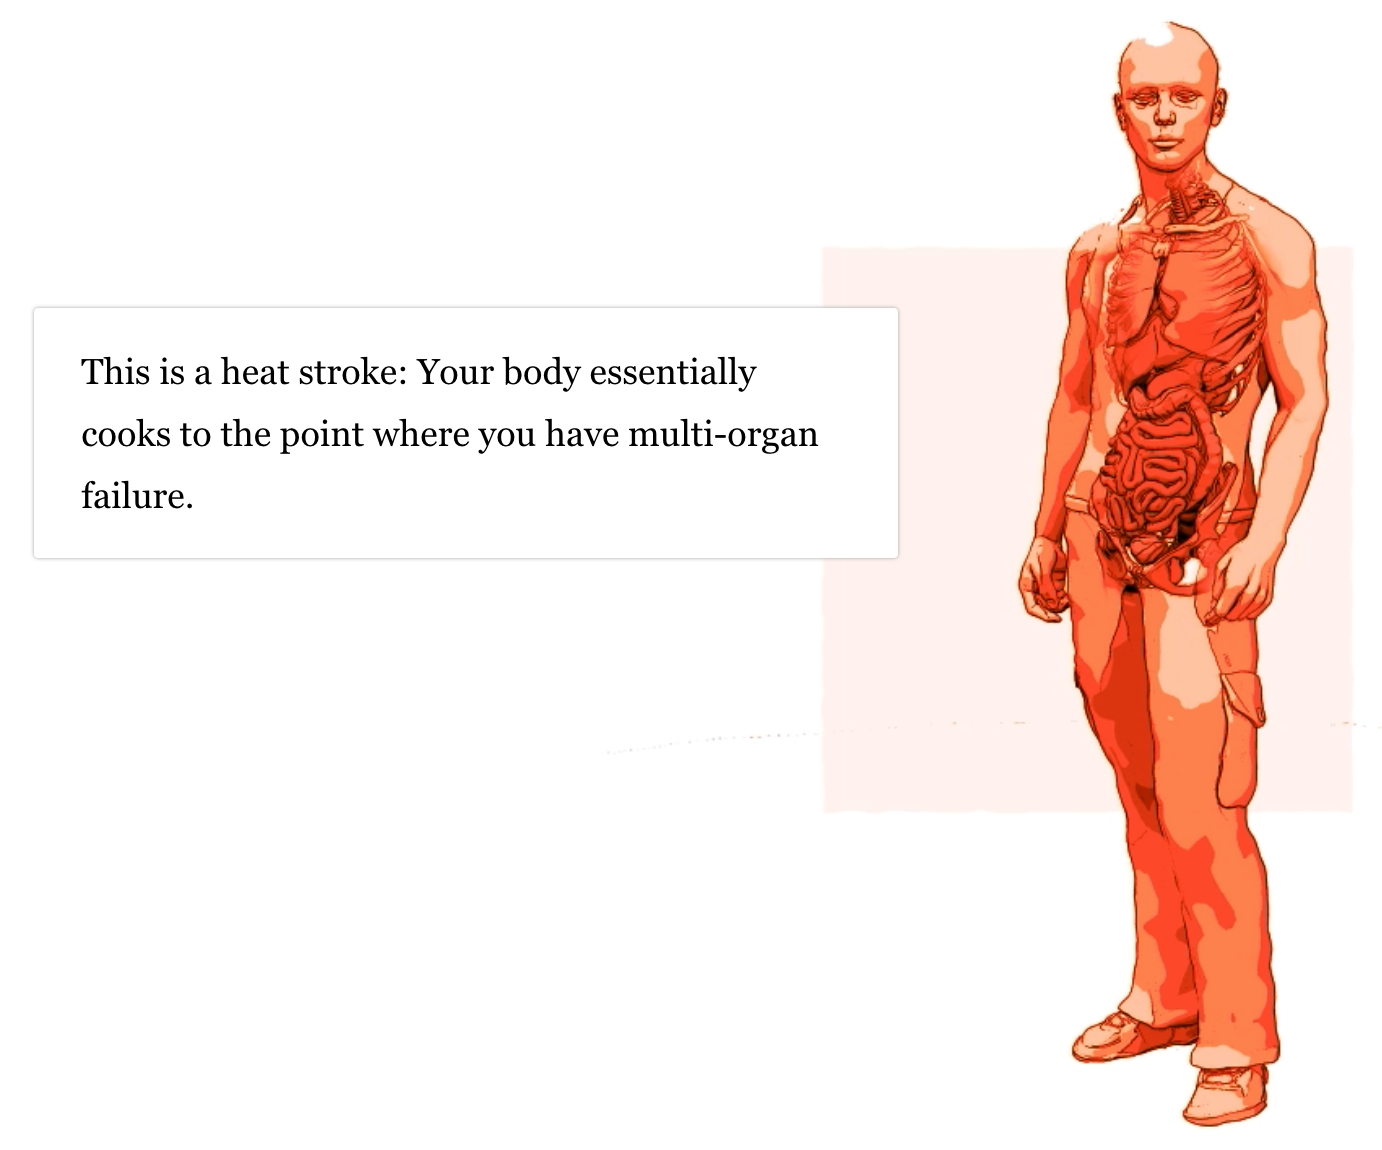 Graphic of a cutaway person showing the organs, all bathed in a hot red wash. A text block reads: This is a heat stroke: Your body essentially cooks to the point where you have multi-organ failure.